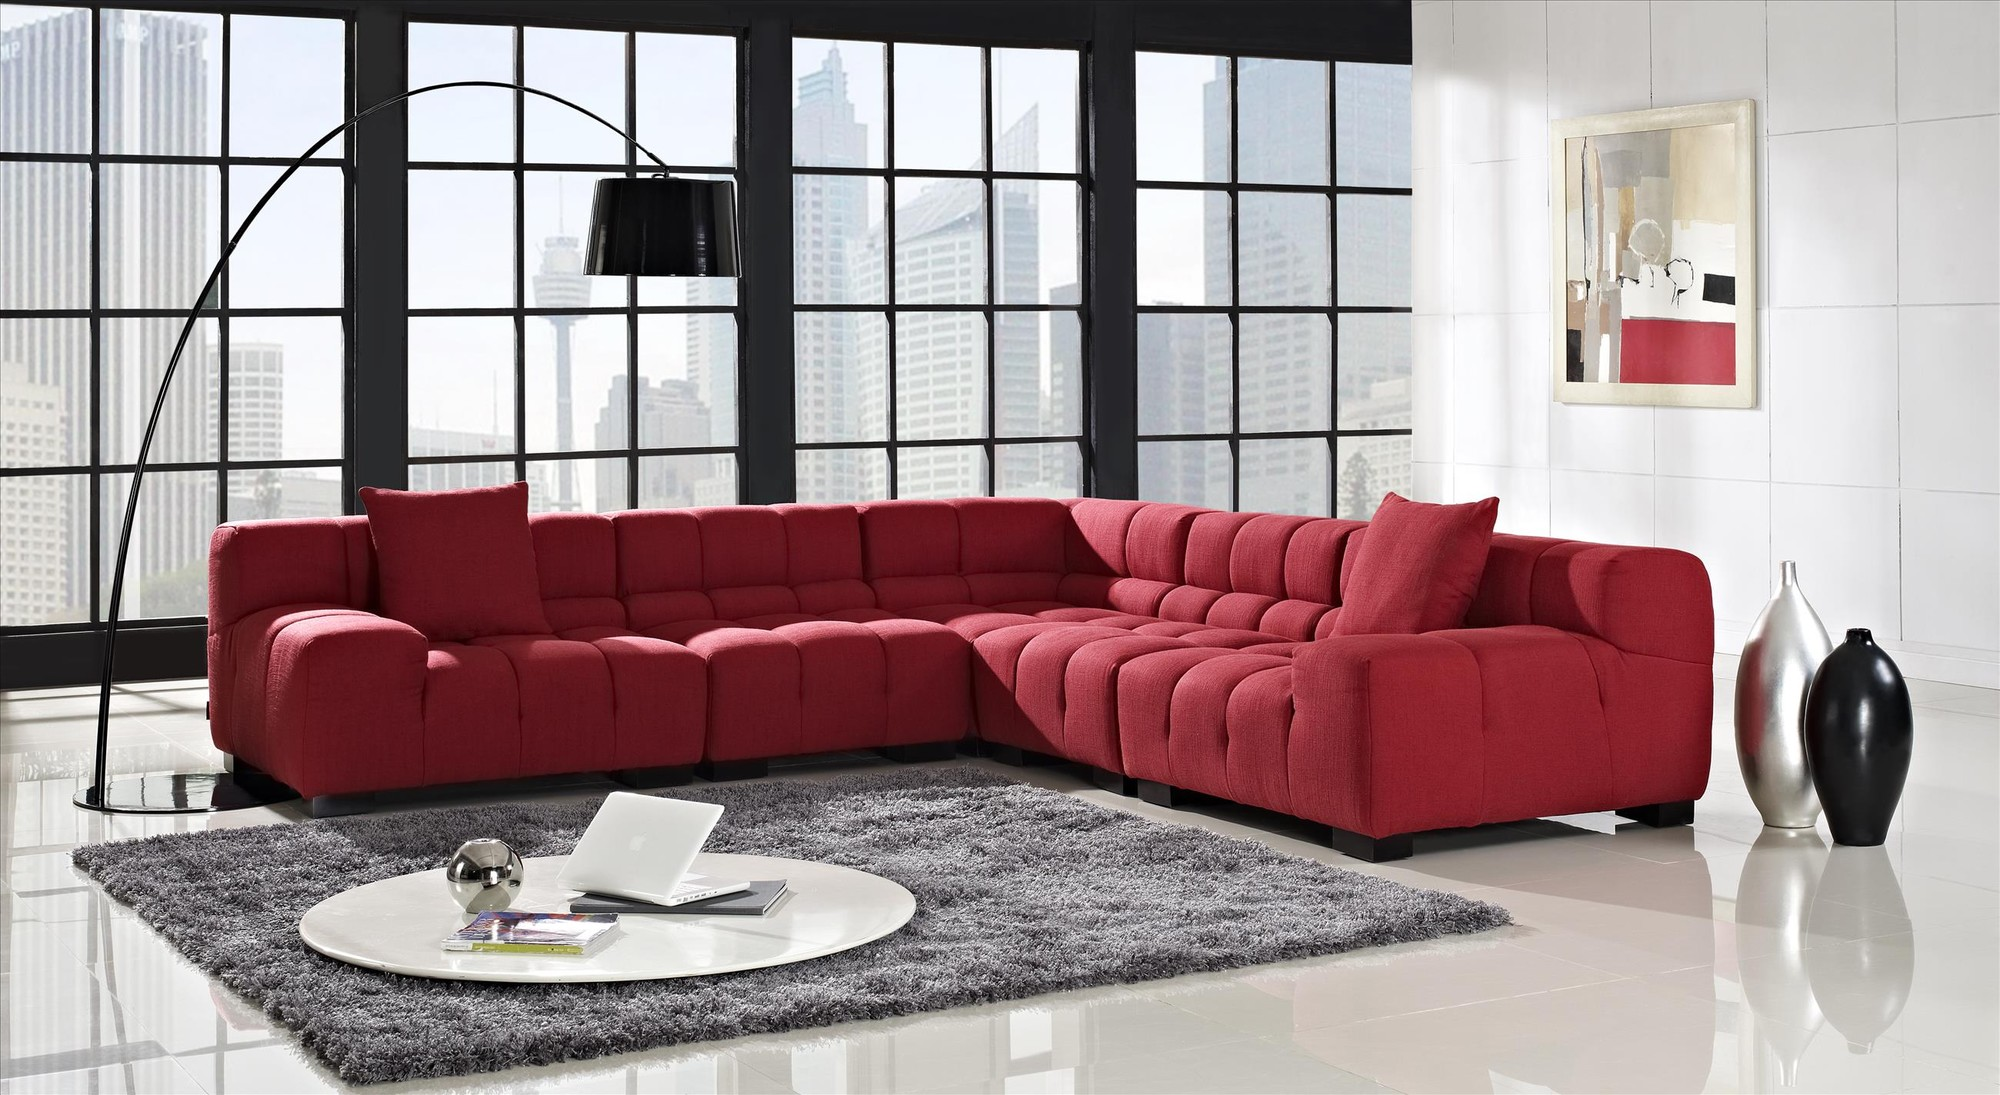 How to choose modern sectional sofas for your home for Sectional furniture